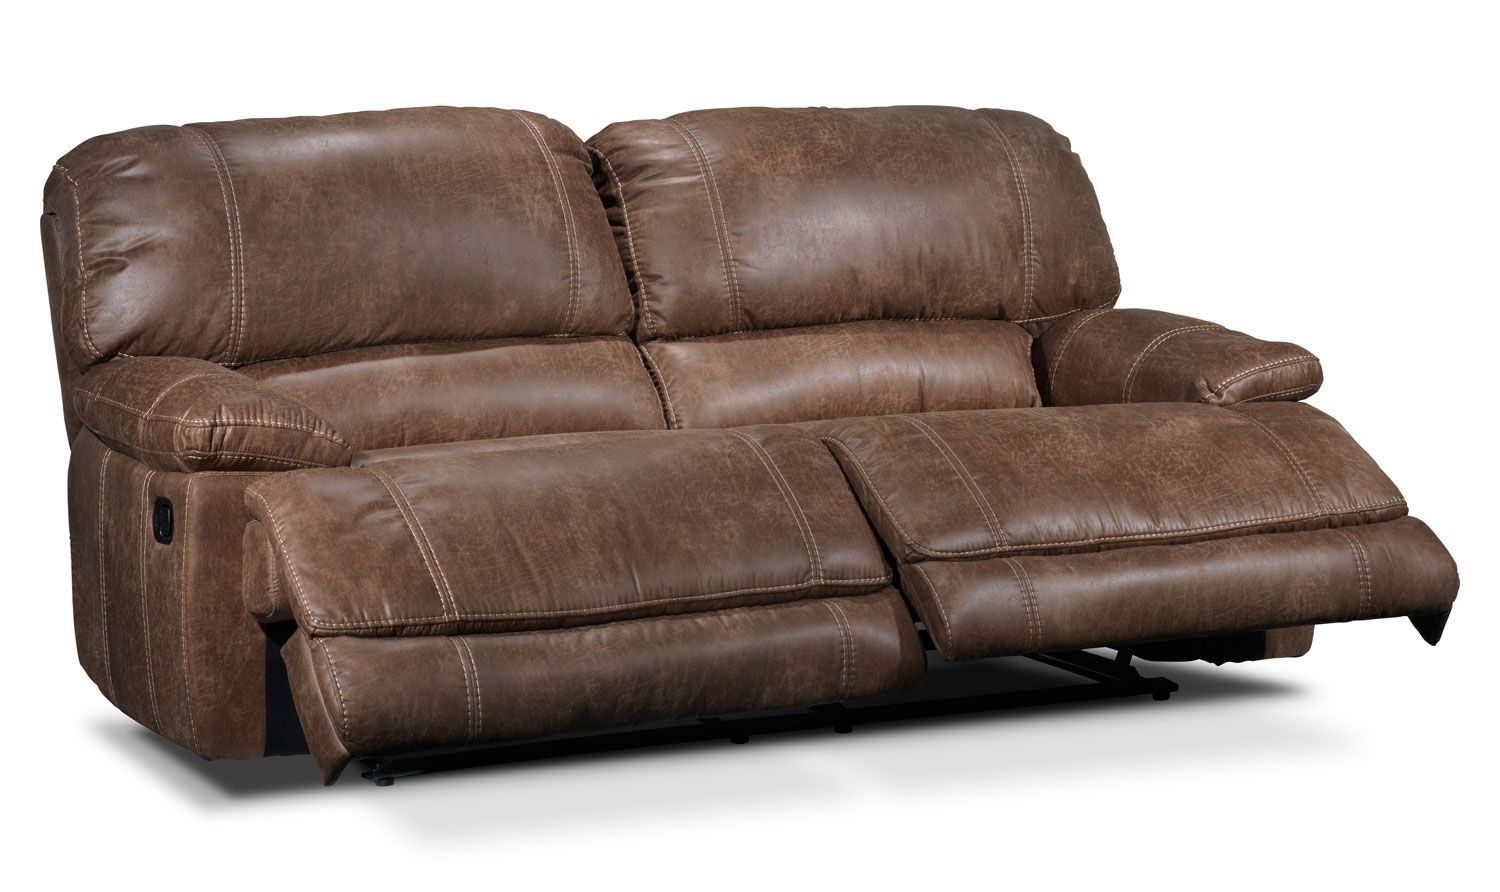 Sofa Reclinavel Primavera Saddle Up The Rugged Look Of The Durango Reclining Sofa Makes It